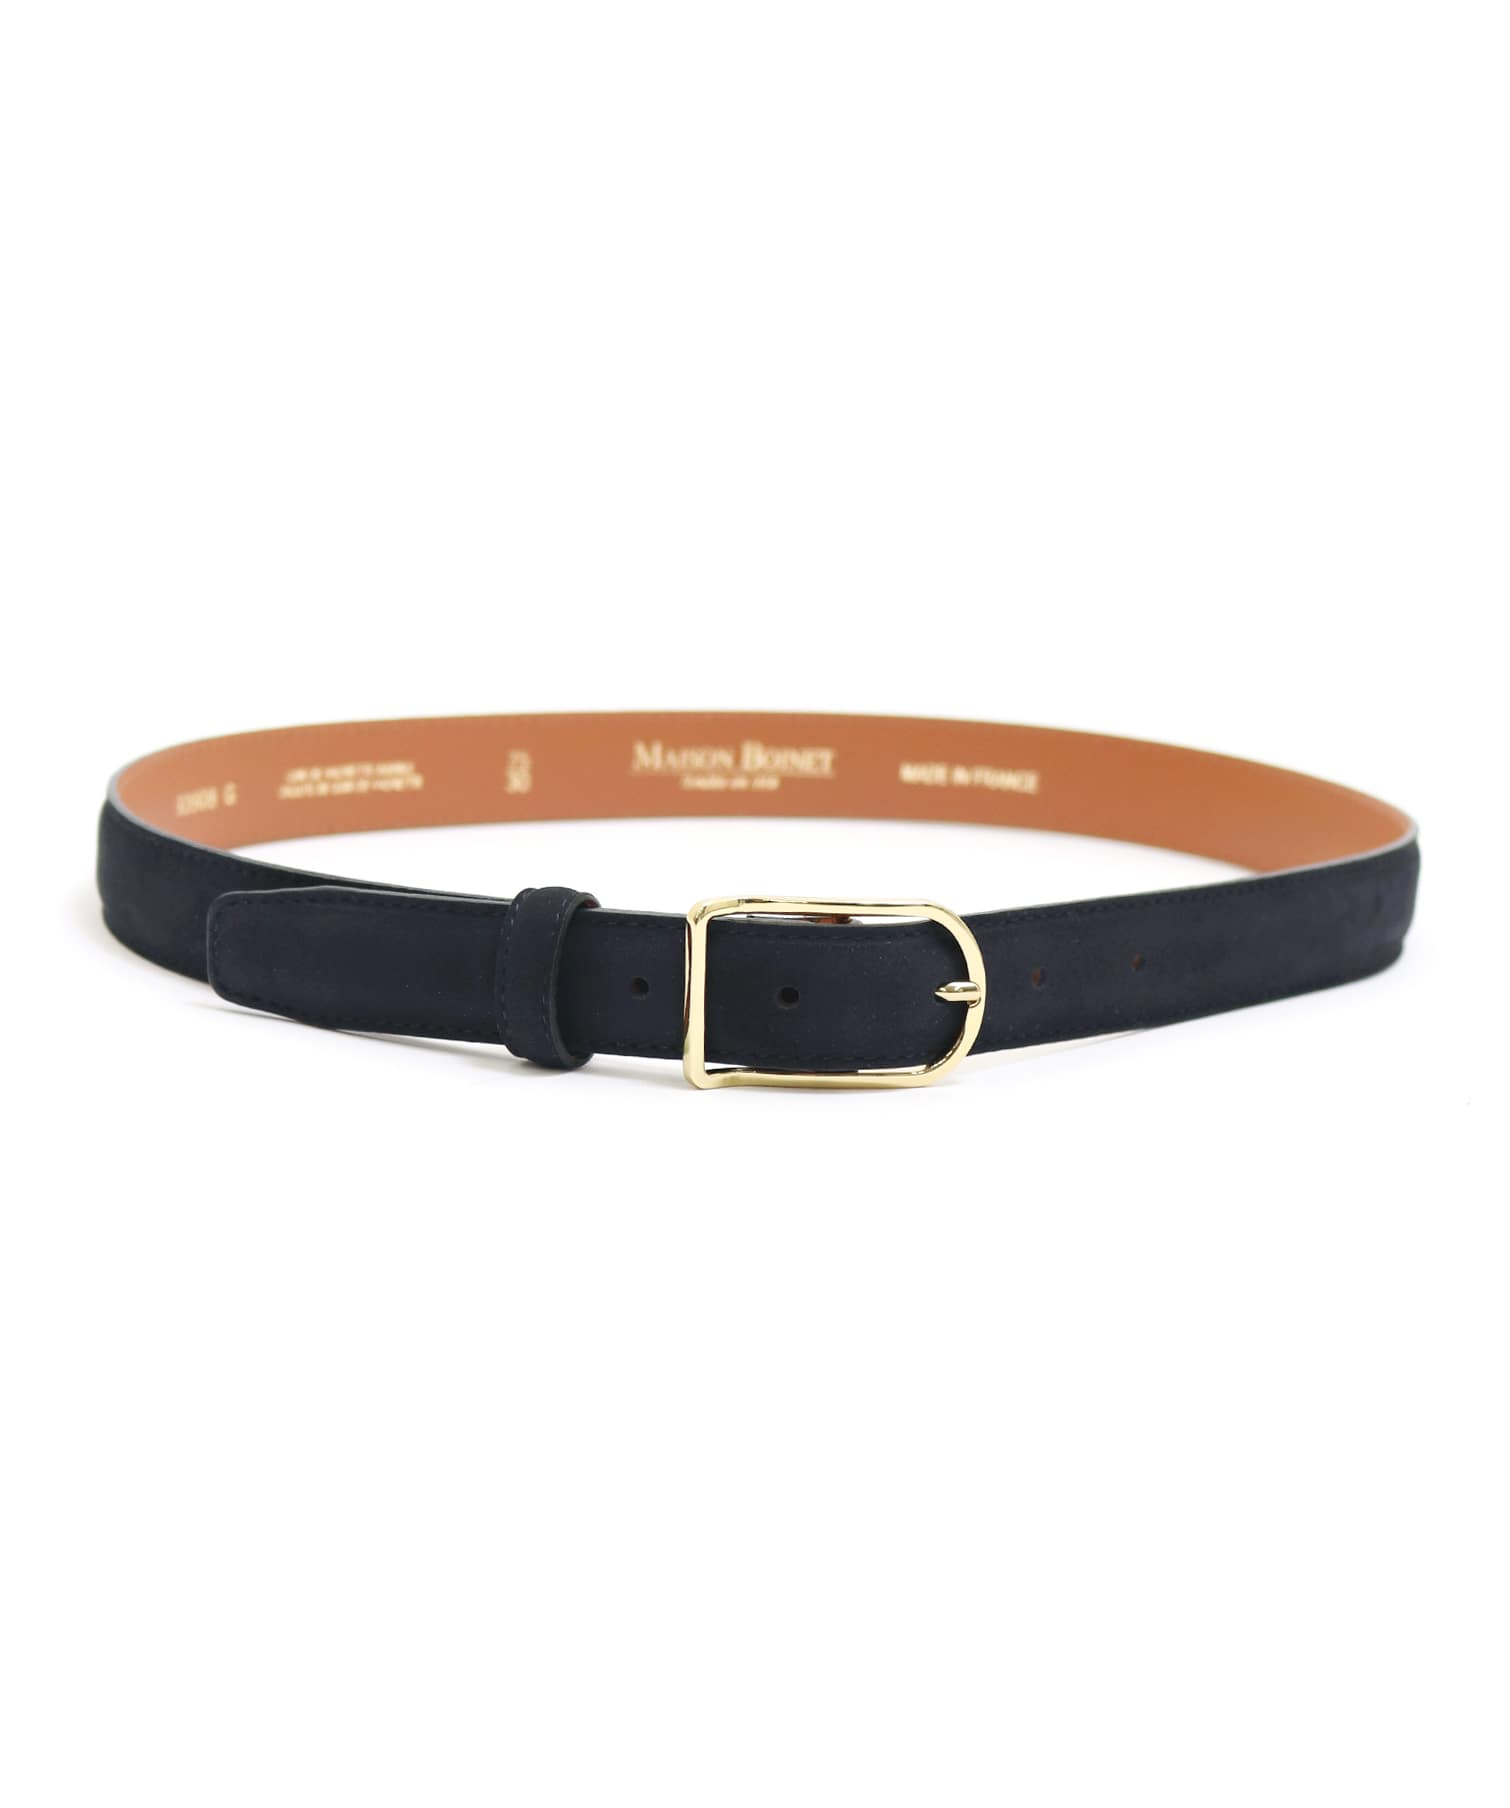 <MAISON BOINET>color leather belt